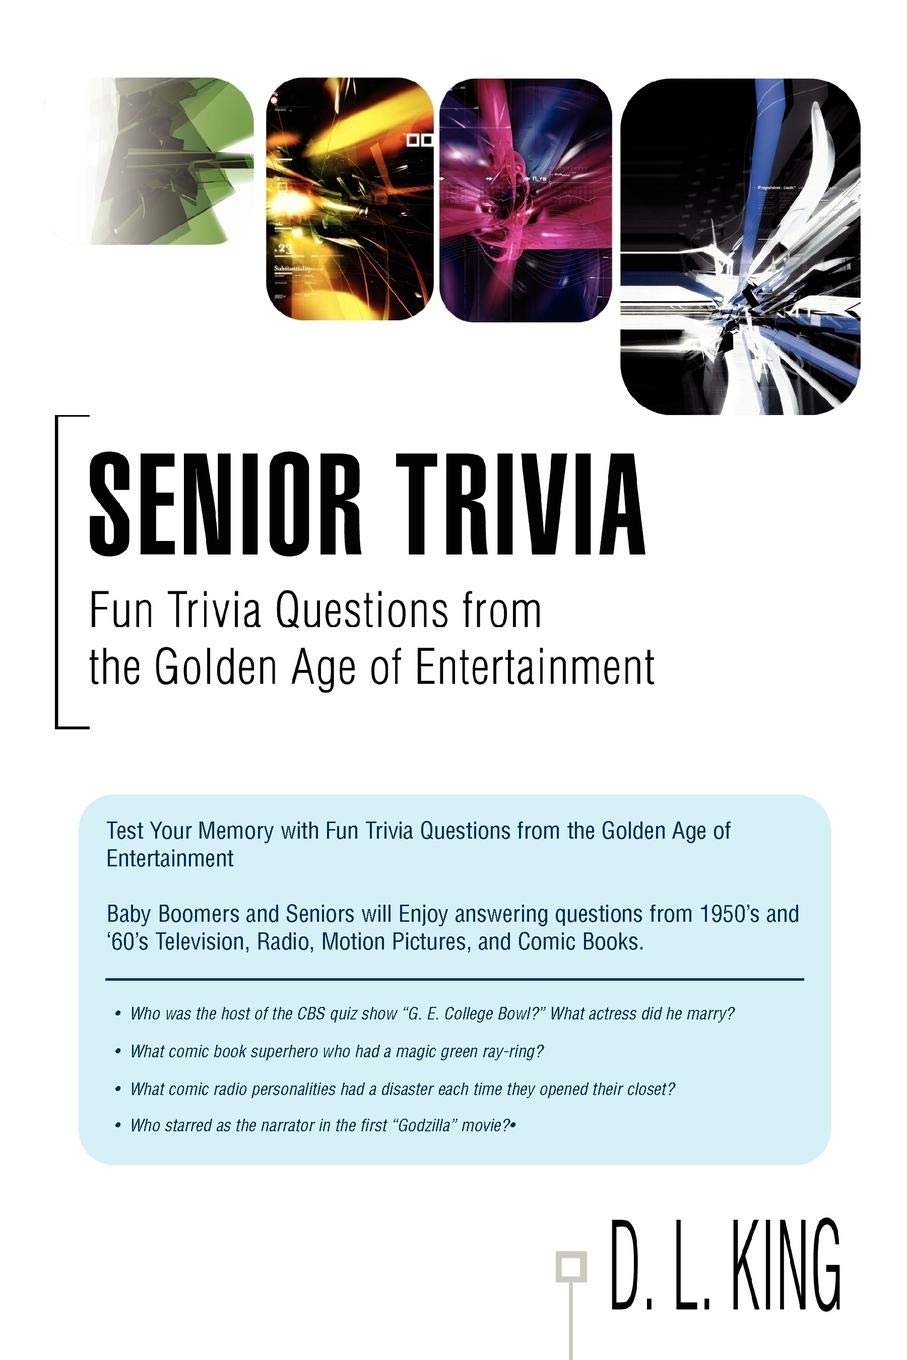 picture regarding 1950 Trivia Questions and Answers Printable named Senior Trivia: Pleasurable Trivia Queries versus the Golden Age of